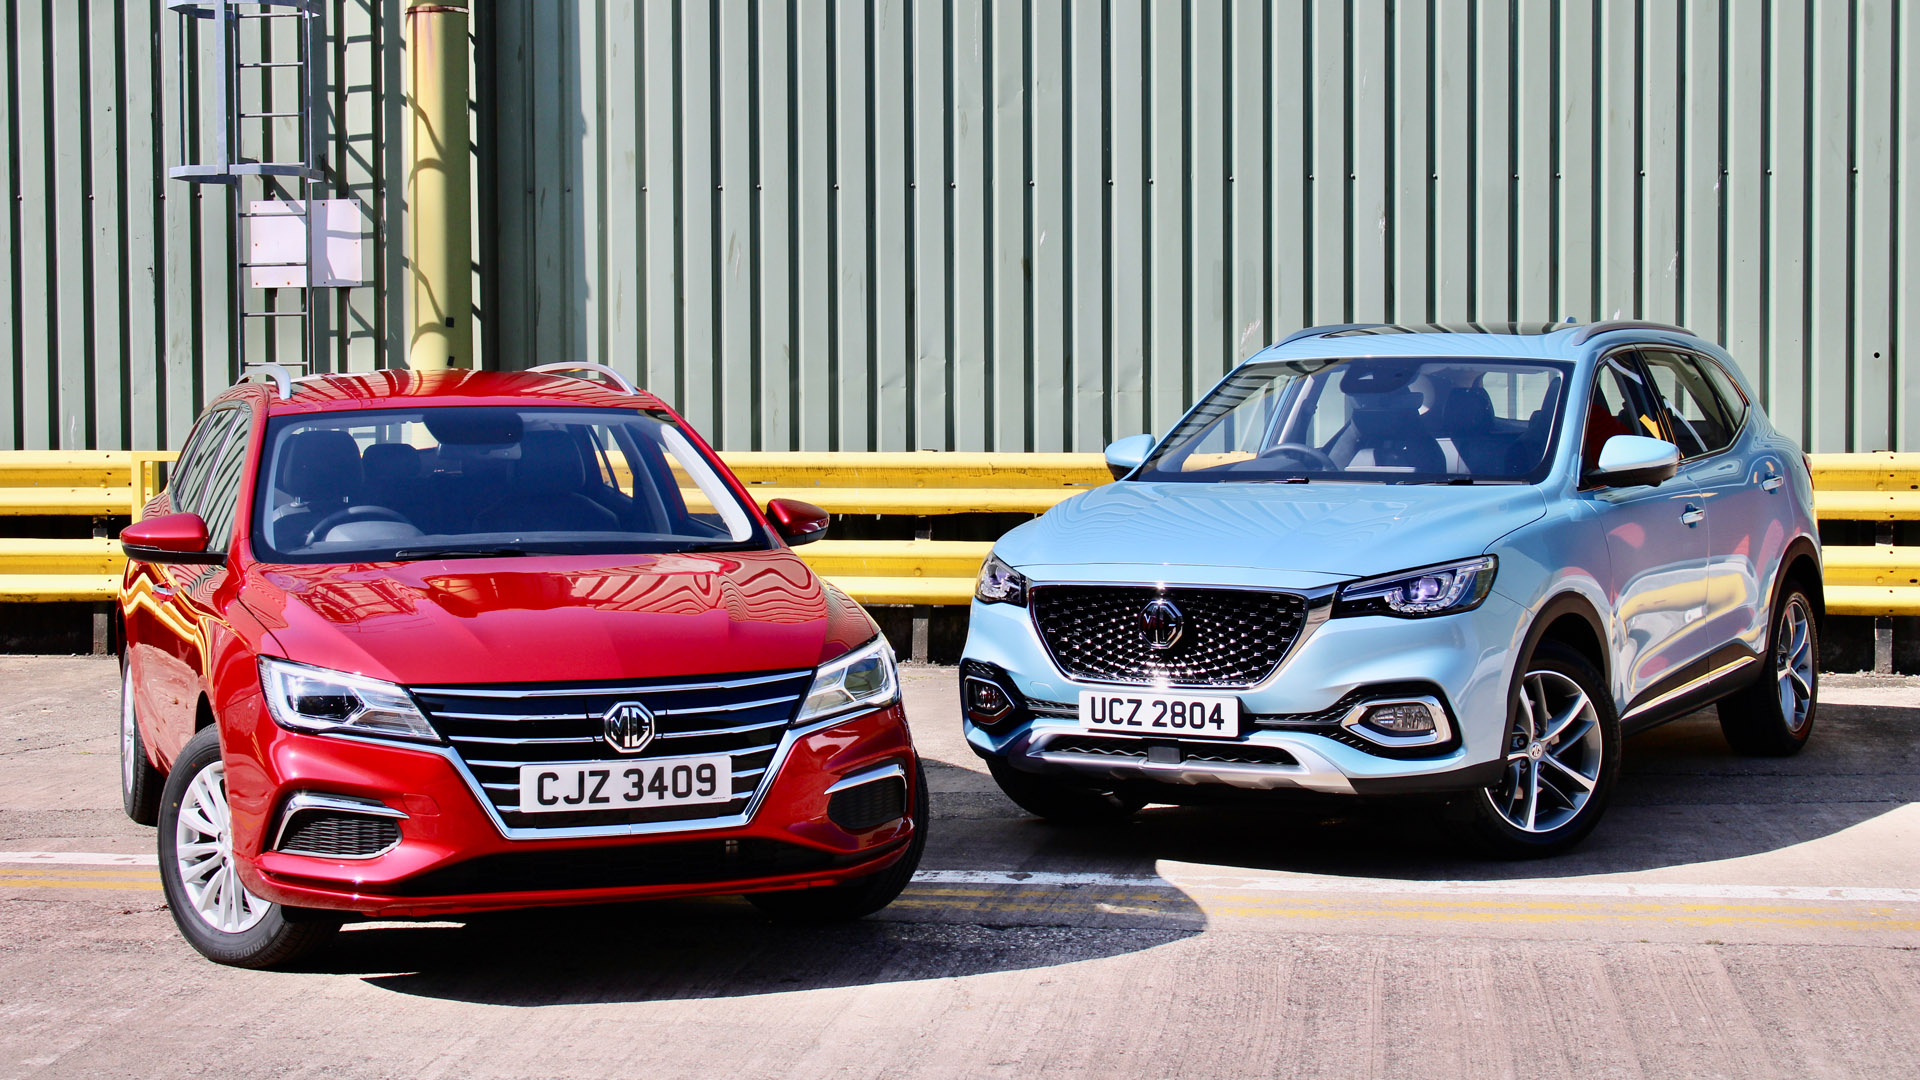 New MG cars